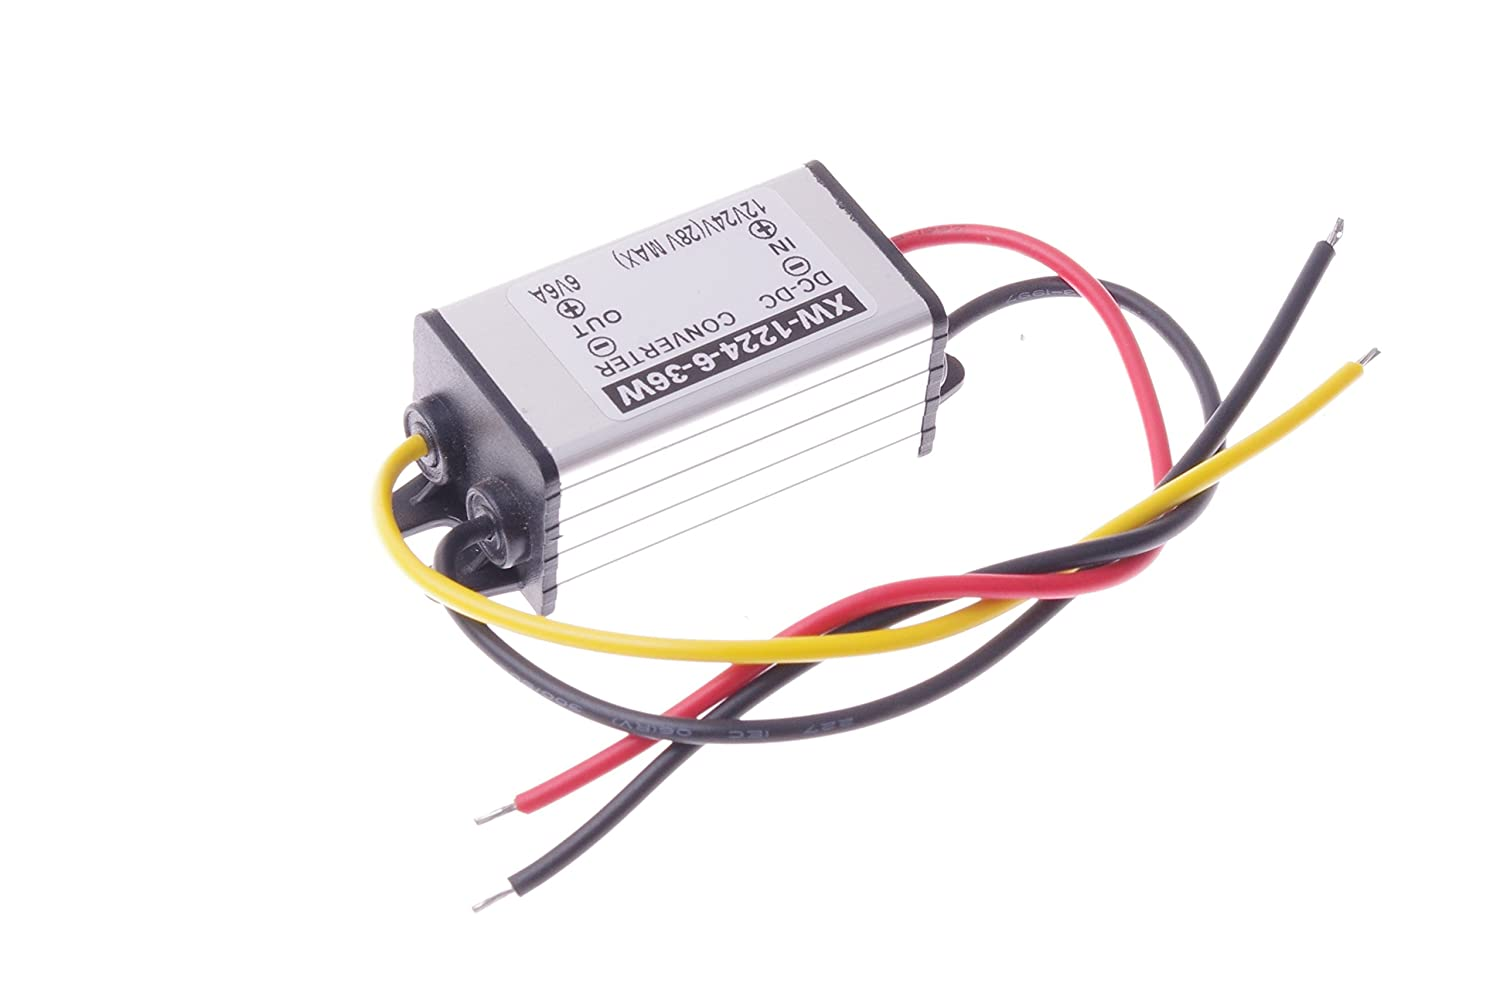 Smakn Dc 12v To 6v 6a 36w Buck Power Converter Simple 3v Circuit Electronics Projects Step Down Supply Waterproof Automotive